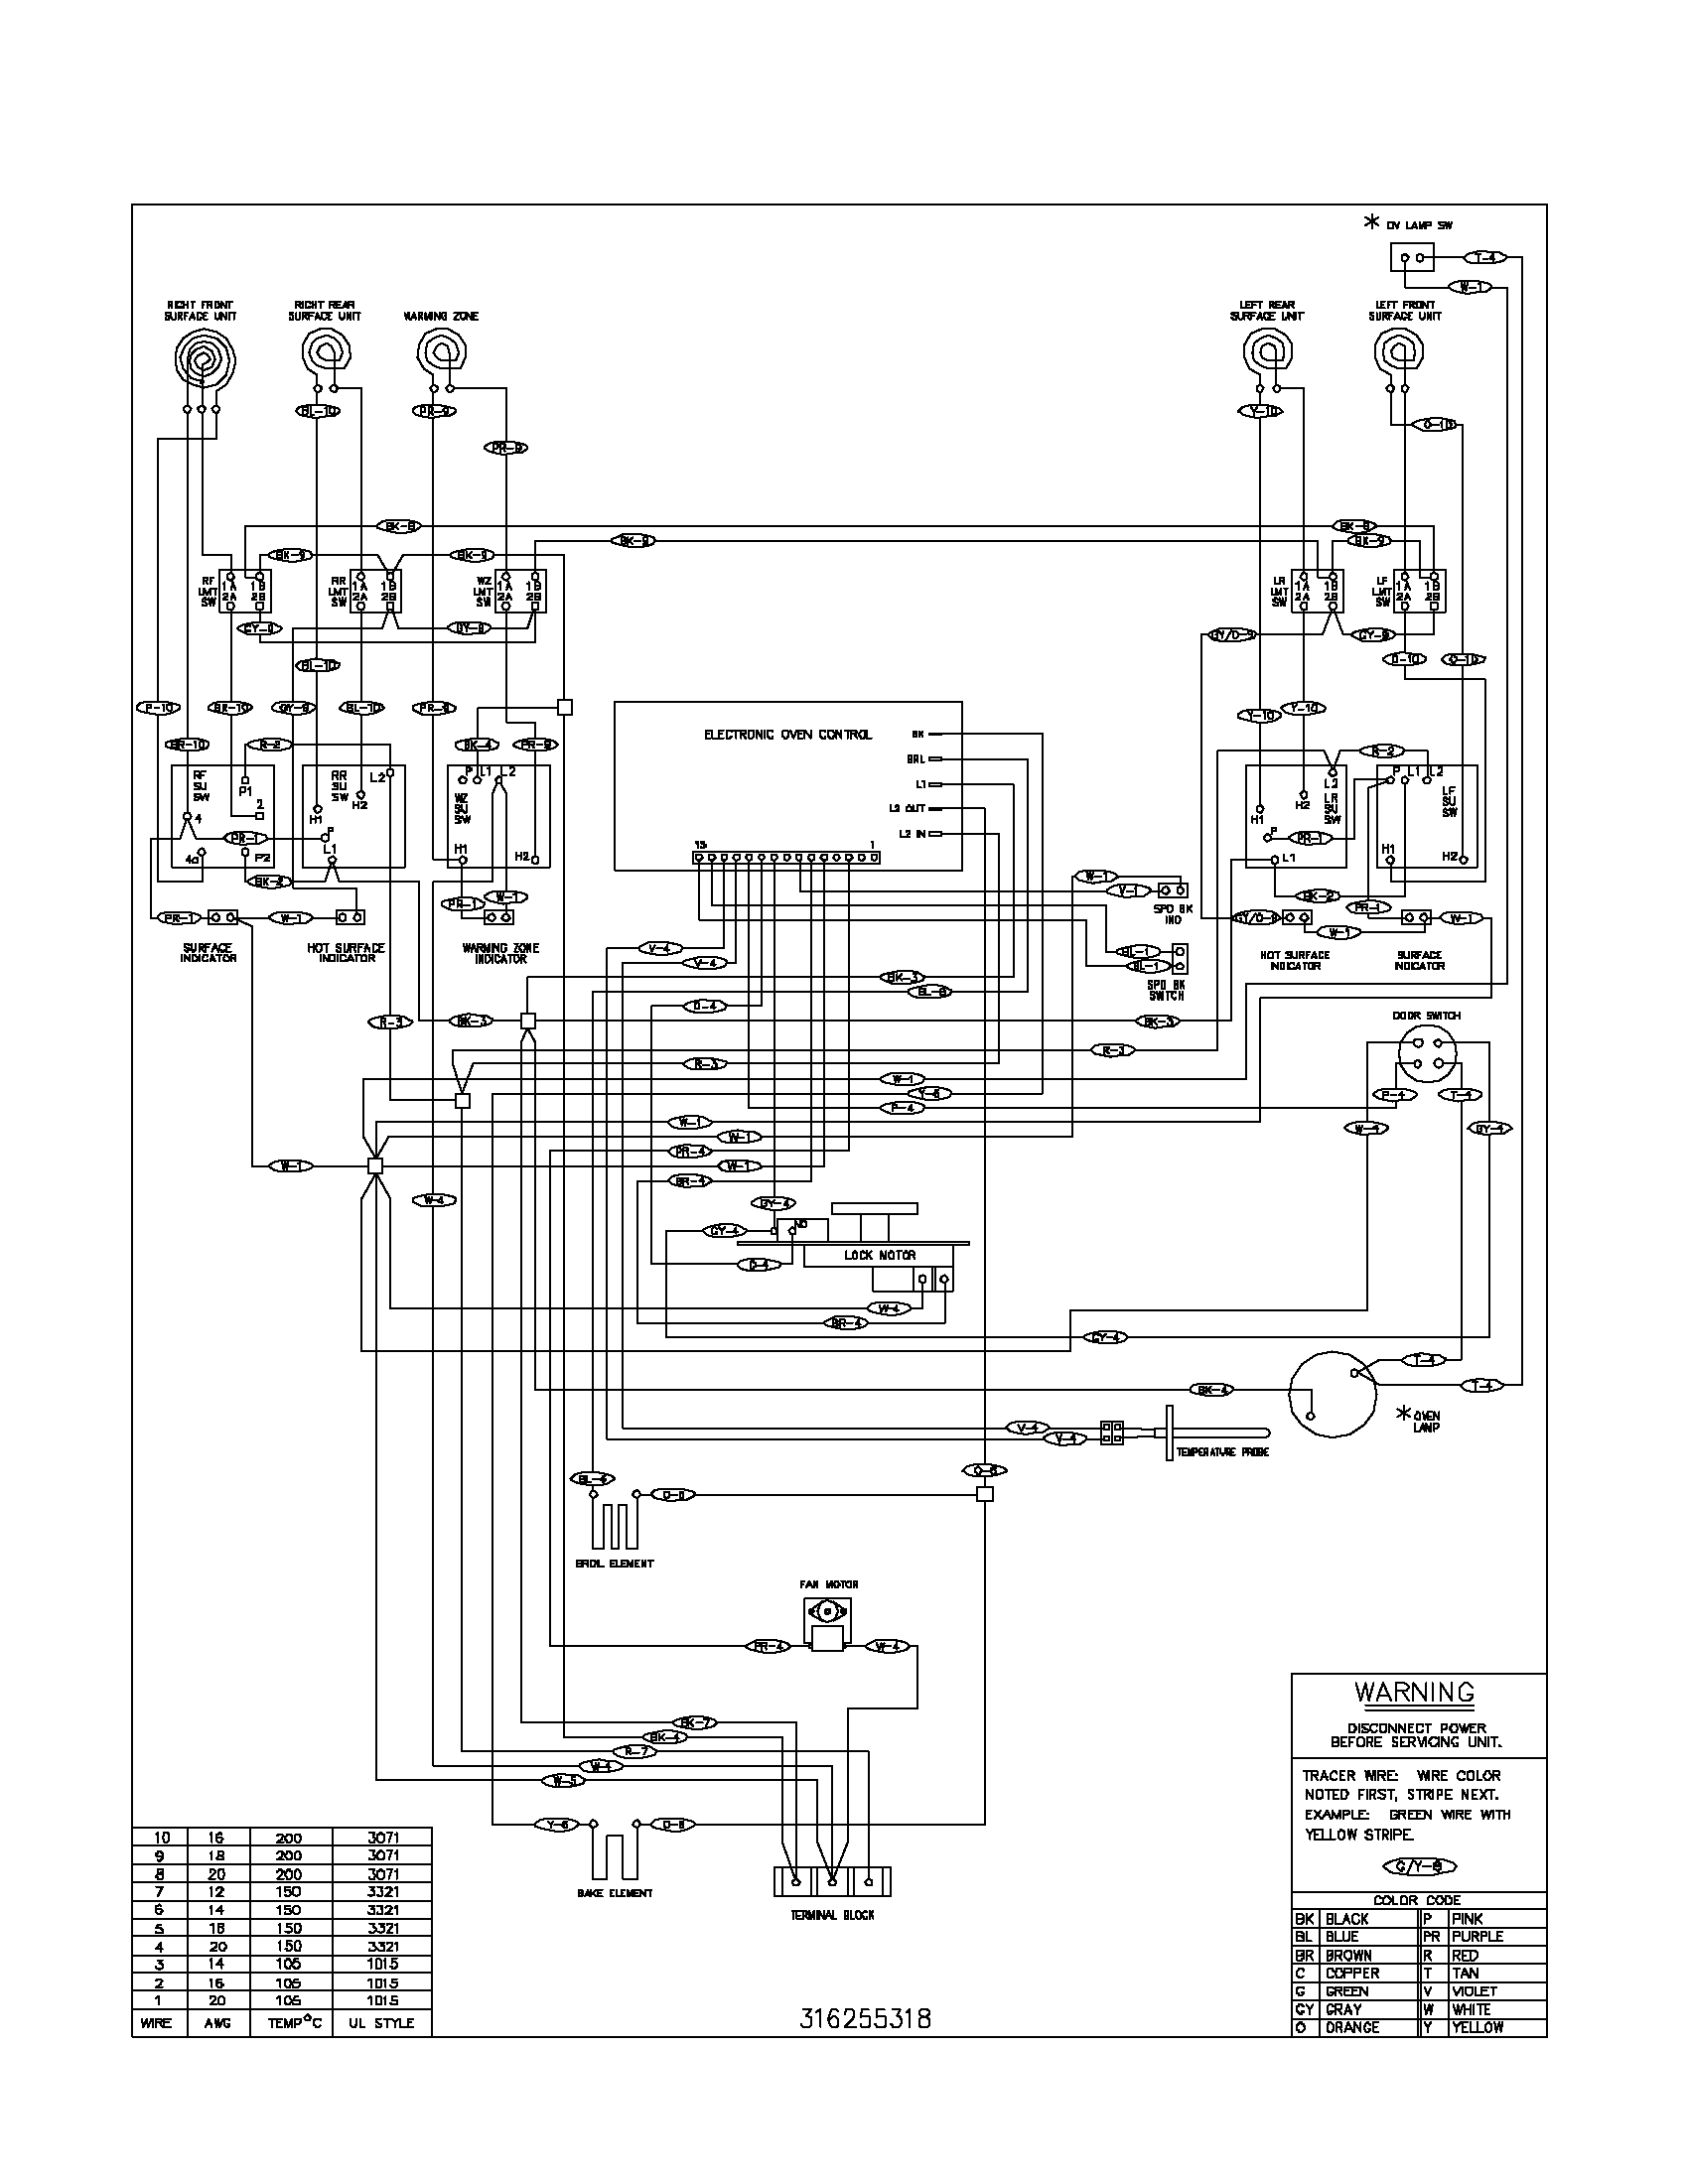 ge stove wiring diagram wiring diagram and schematic design wiring diagram for ge microwave oven car